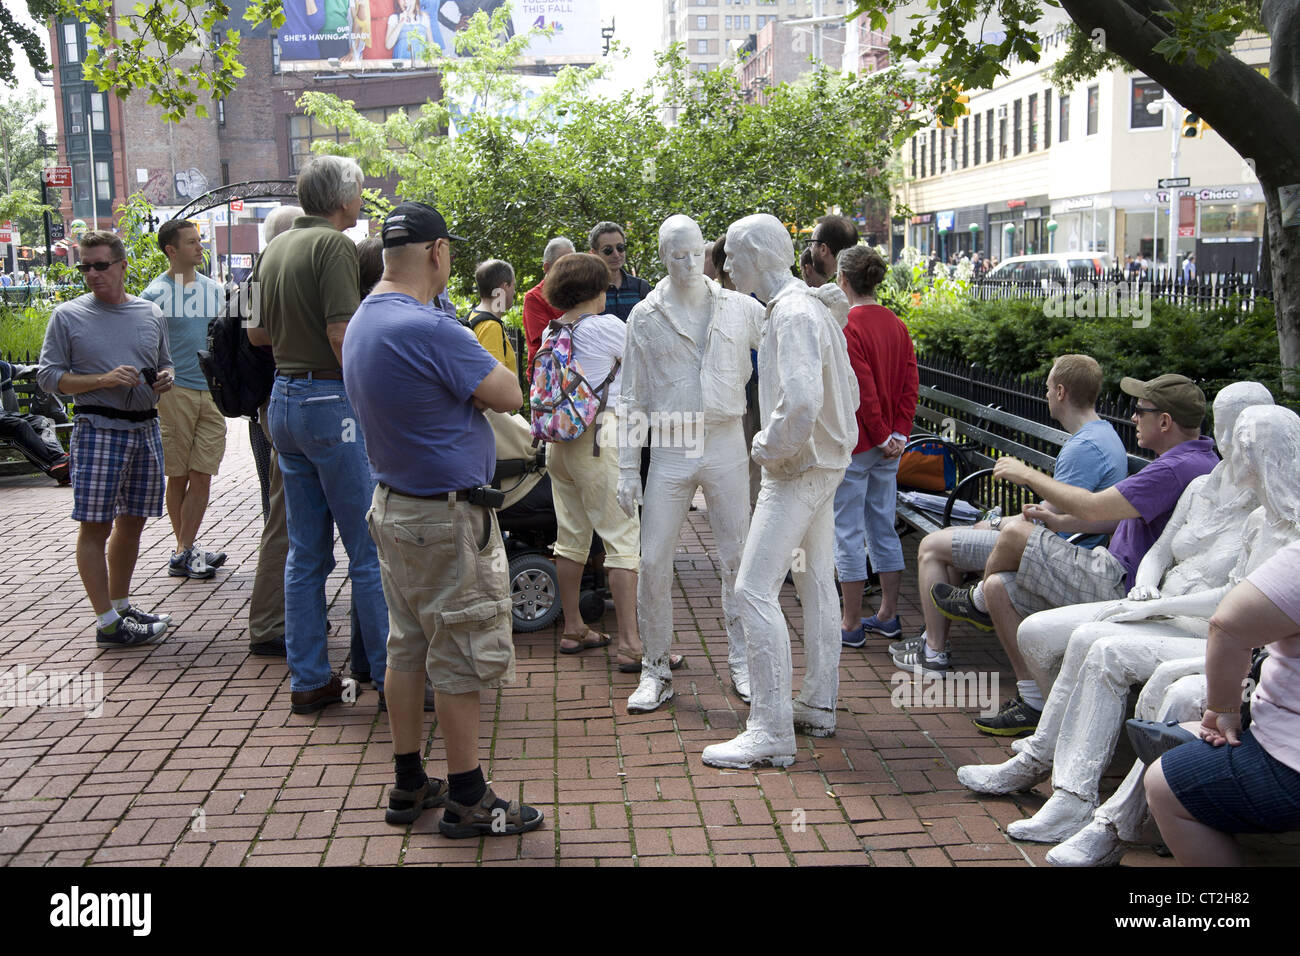 Tour group at the Stonewall Memorial in Greenwich Village near the Stonewall Inn. - Stock Image